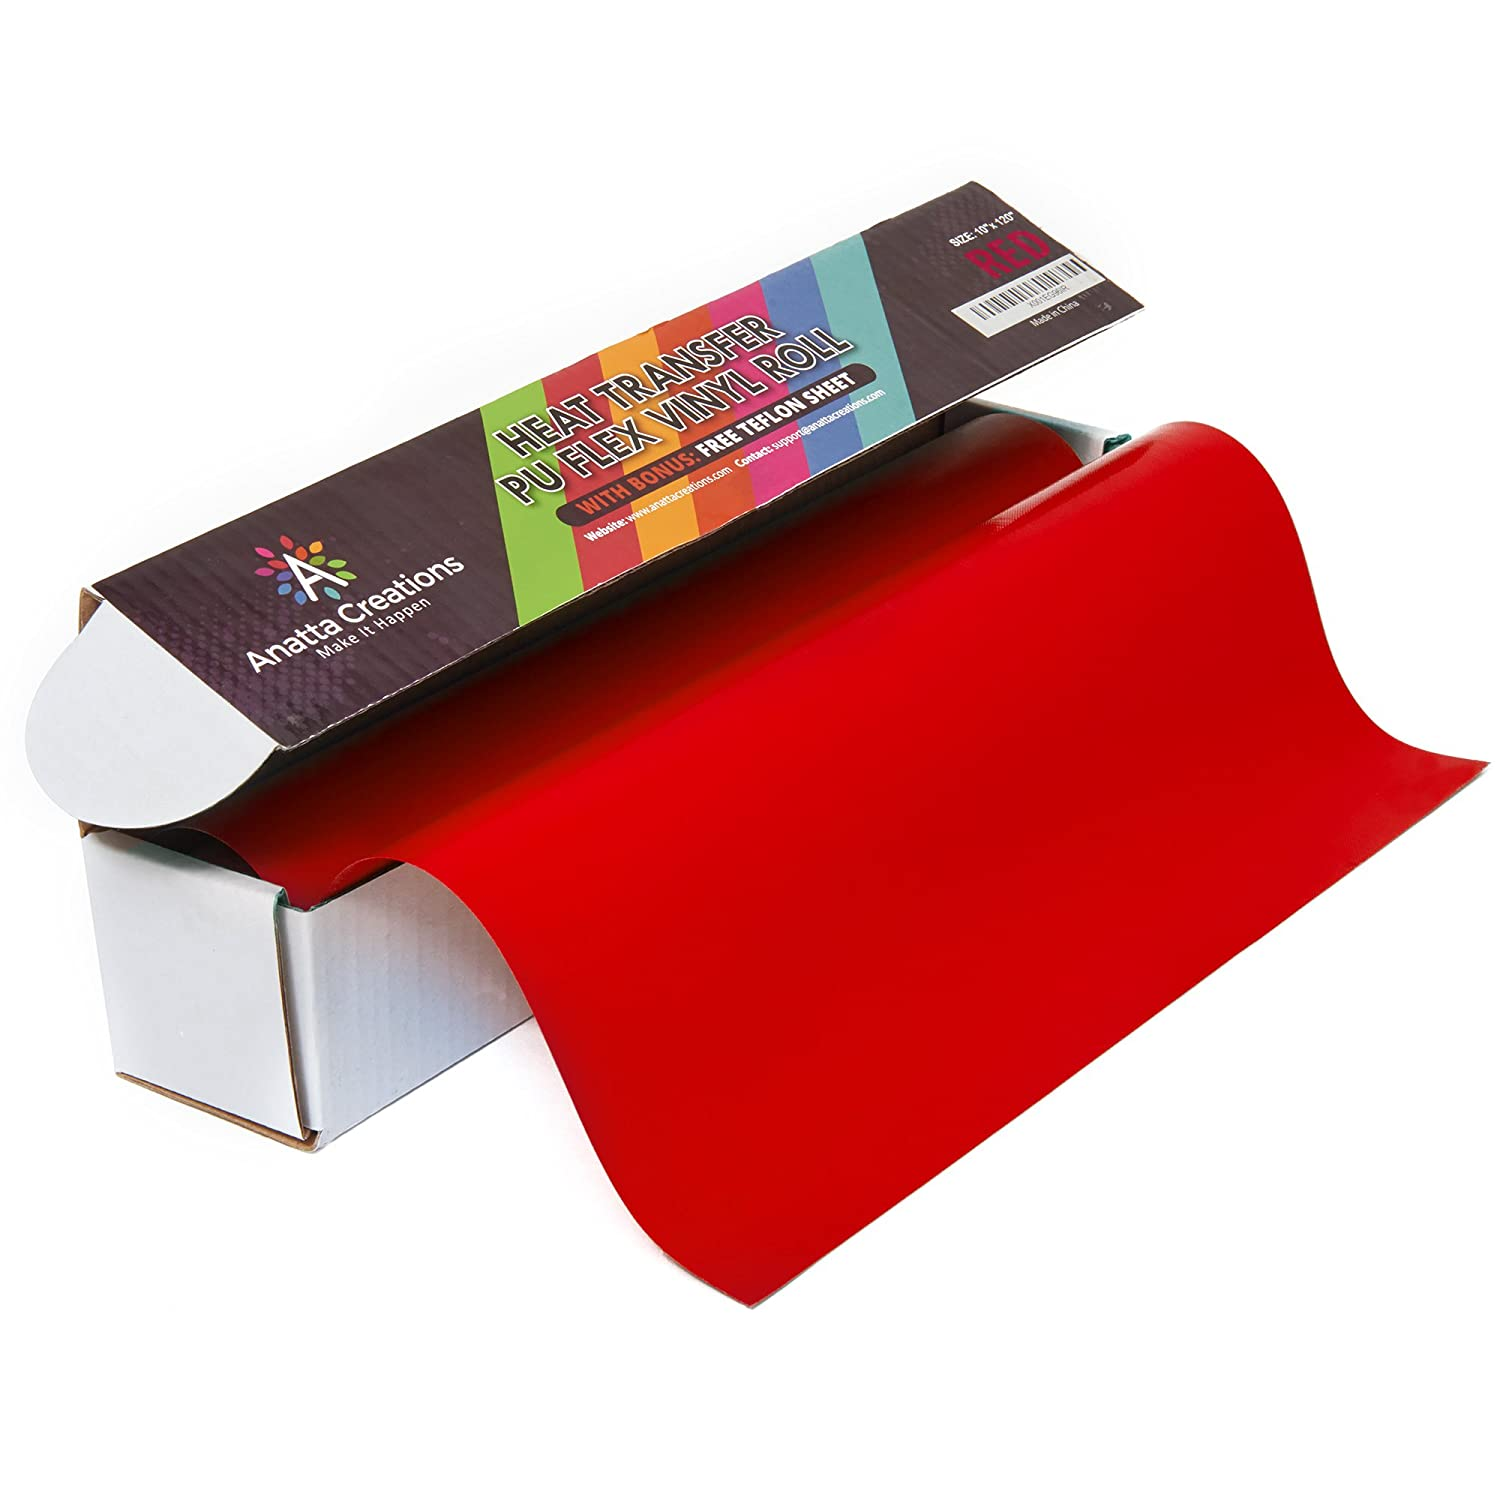 Heat Transfer Iron On Vinyl Roll - 100% PU, 10 x 10', RED, with Free Teflon Sheet 12x10, Compatible with Silhouette Cameo Cricut, Suitable for Professionals by ANATTA CREATIONS 10 x 10'